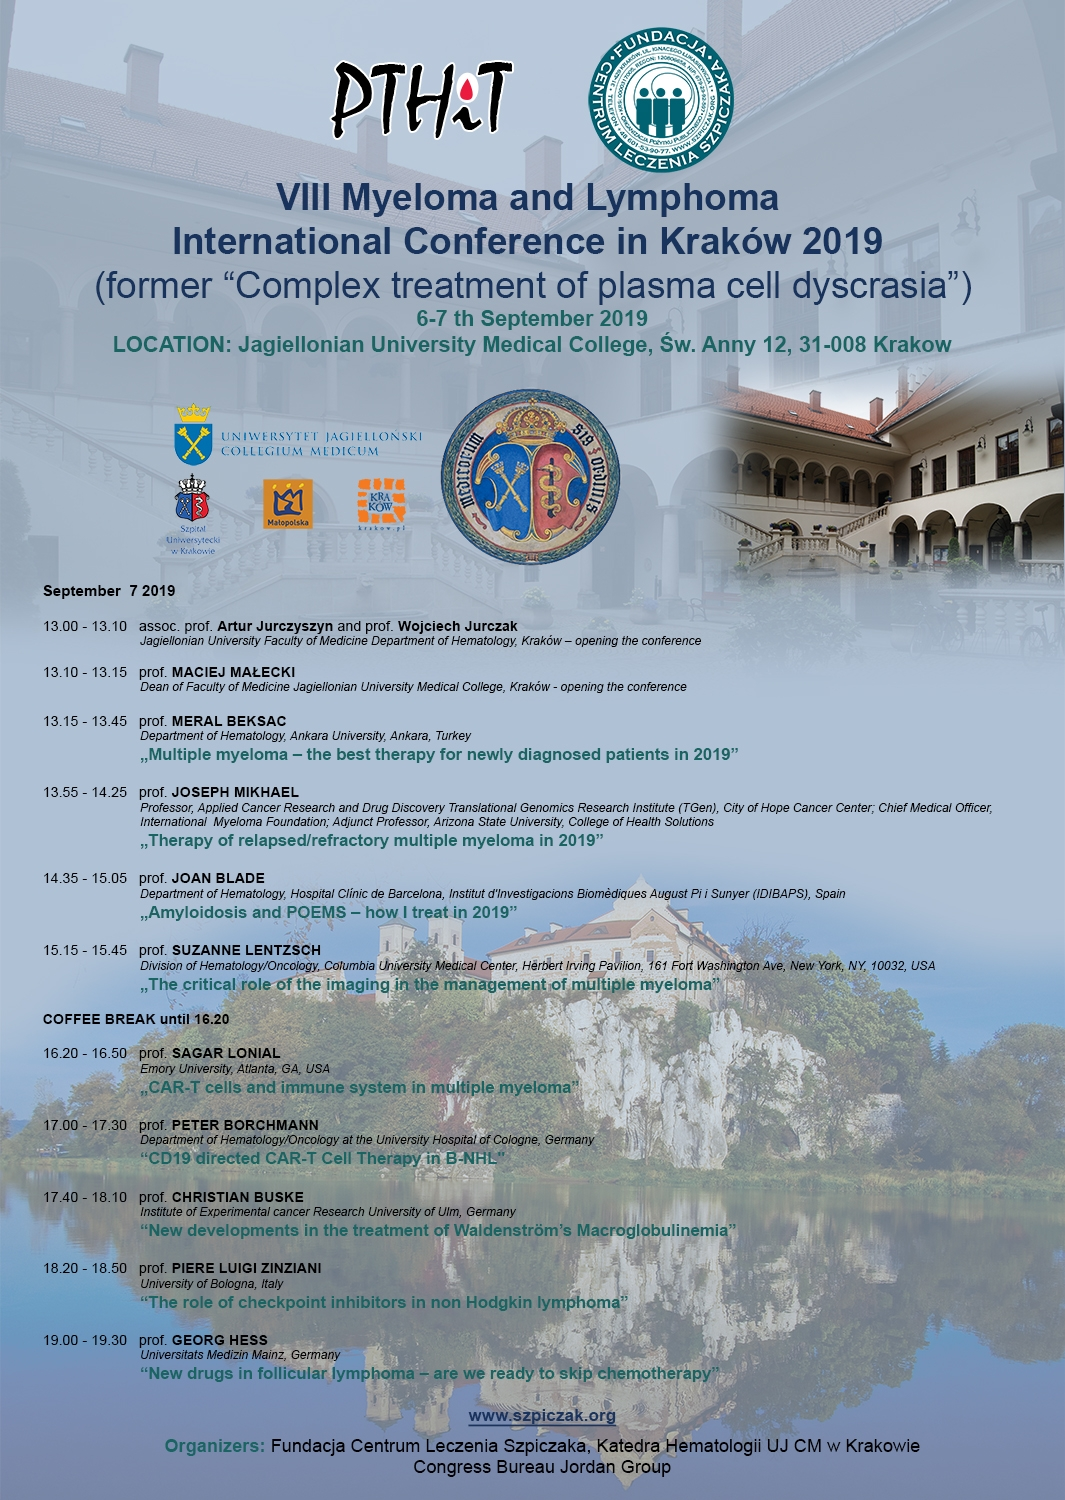 VIII Myeloma and Lymphoma International Conference in Kraków 2019